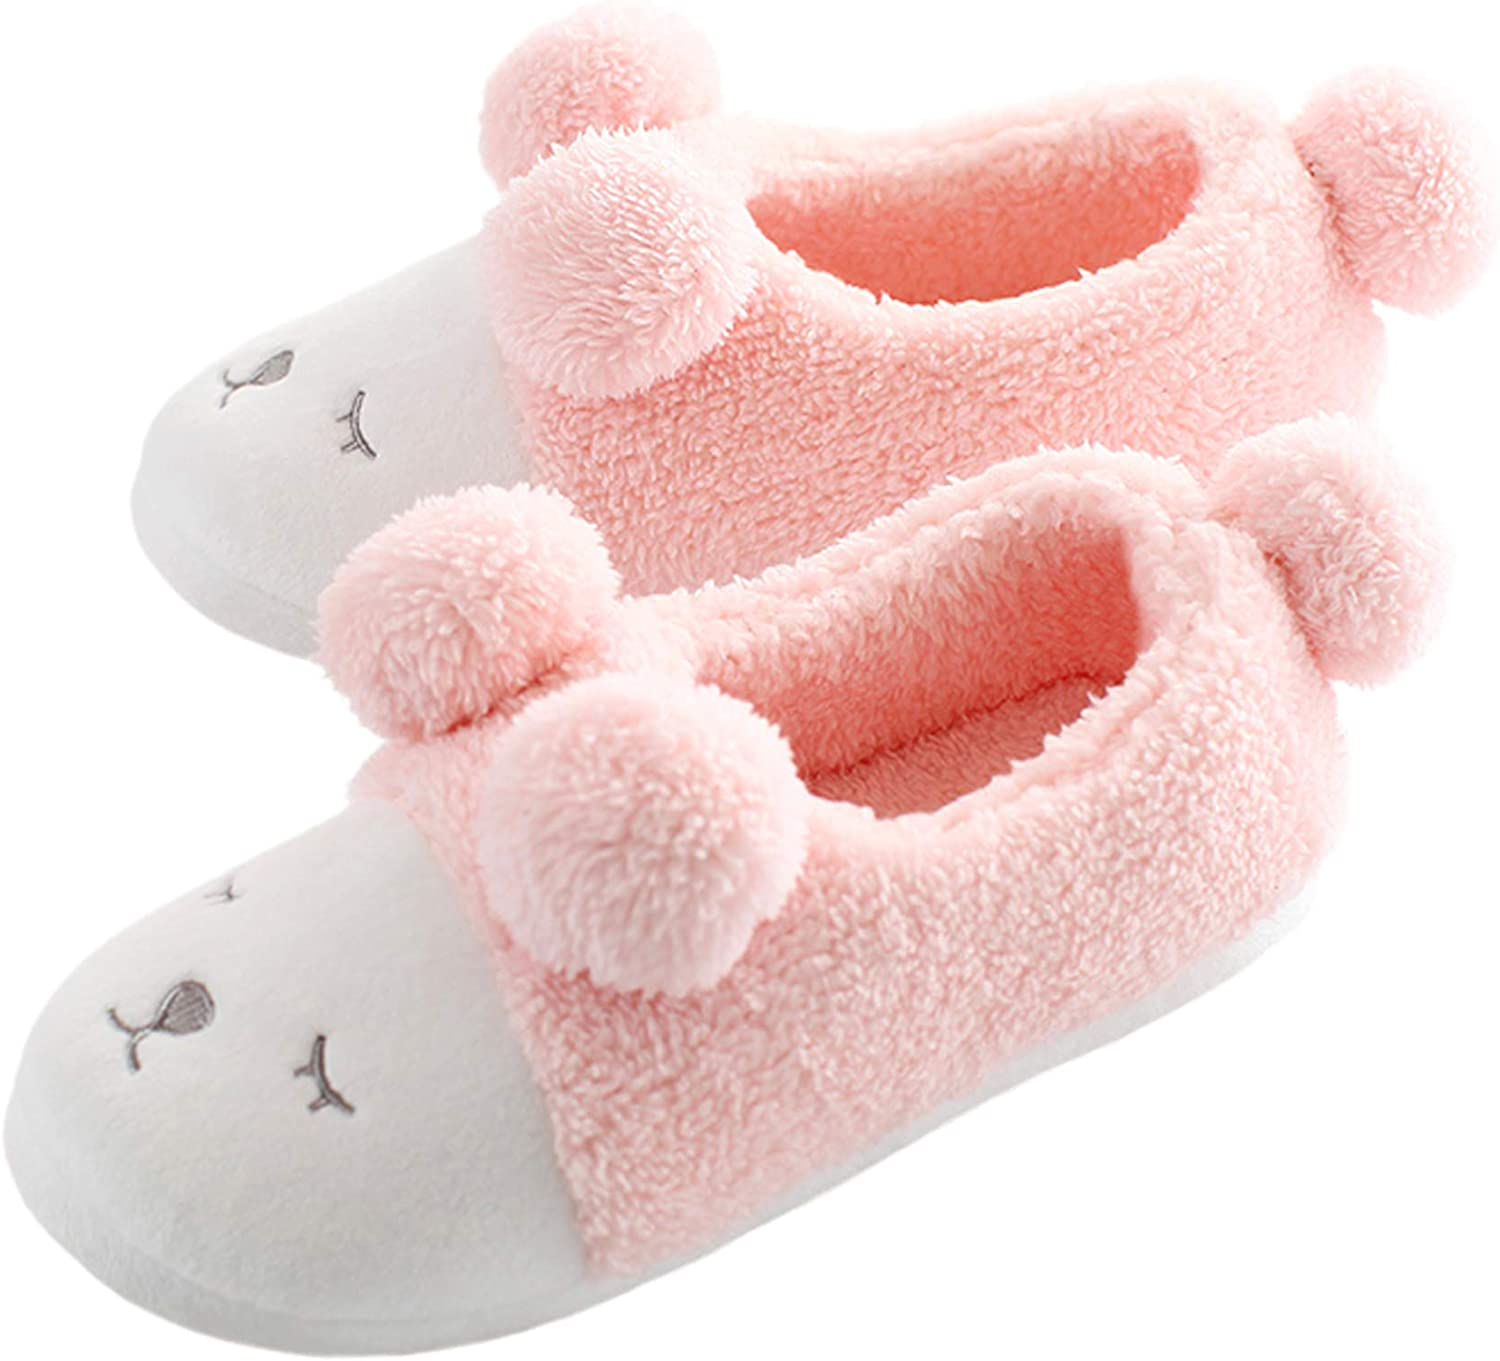 Bestfur Women's Soft Sole Cozy Plush Cute House Slippers Comfortable Home shoes